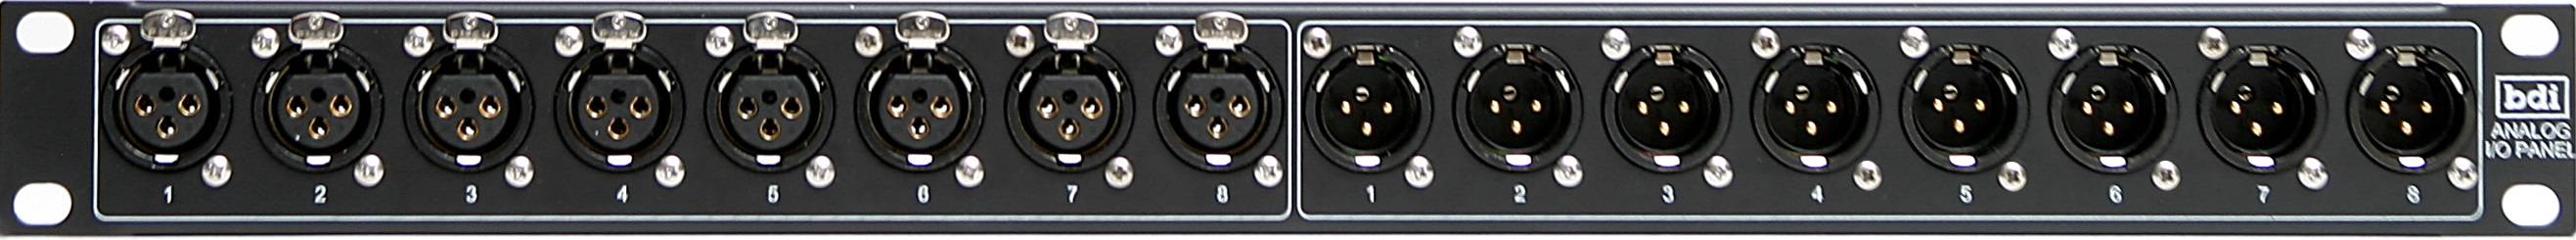 AIP 100 and DIP 100 8 Channel XLR Analog or Digital Panel